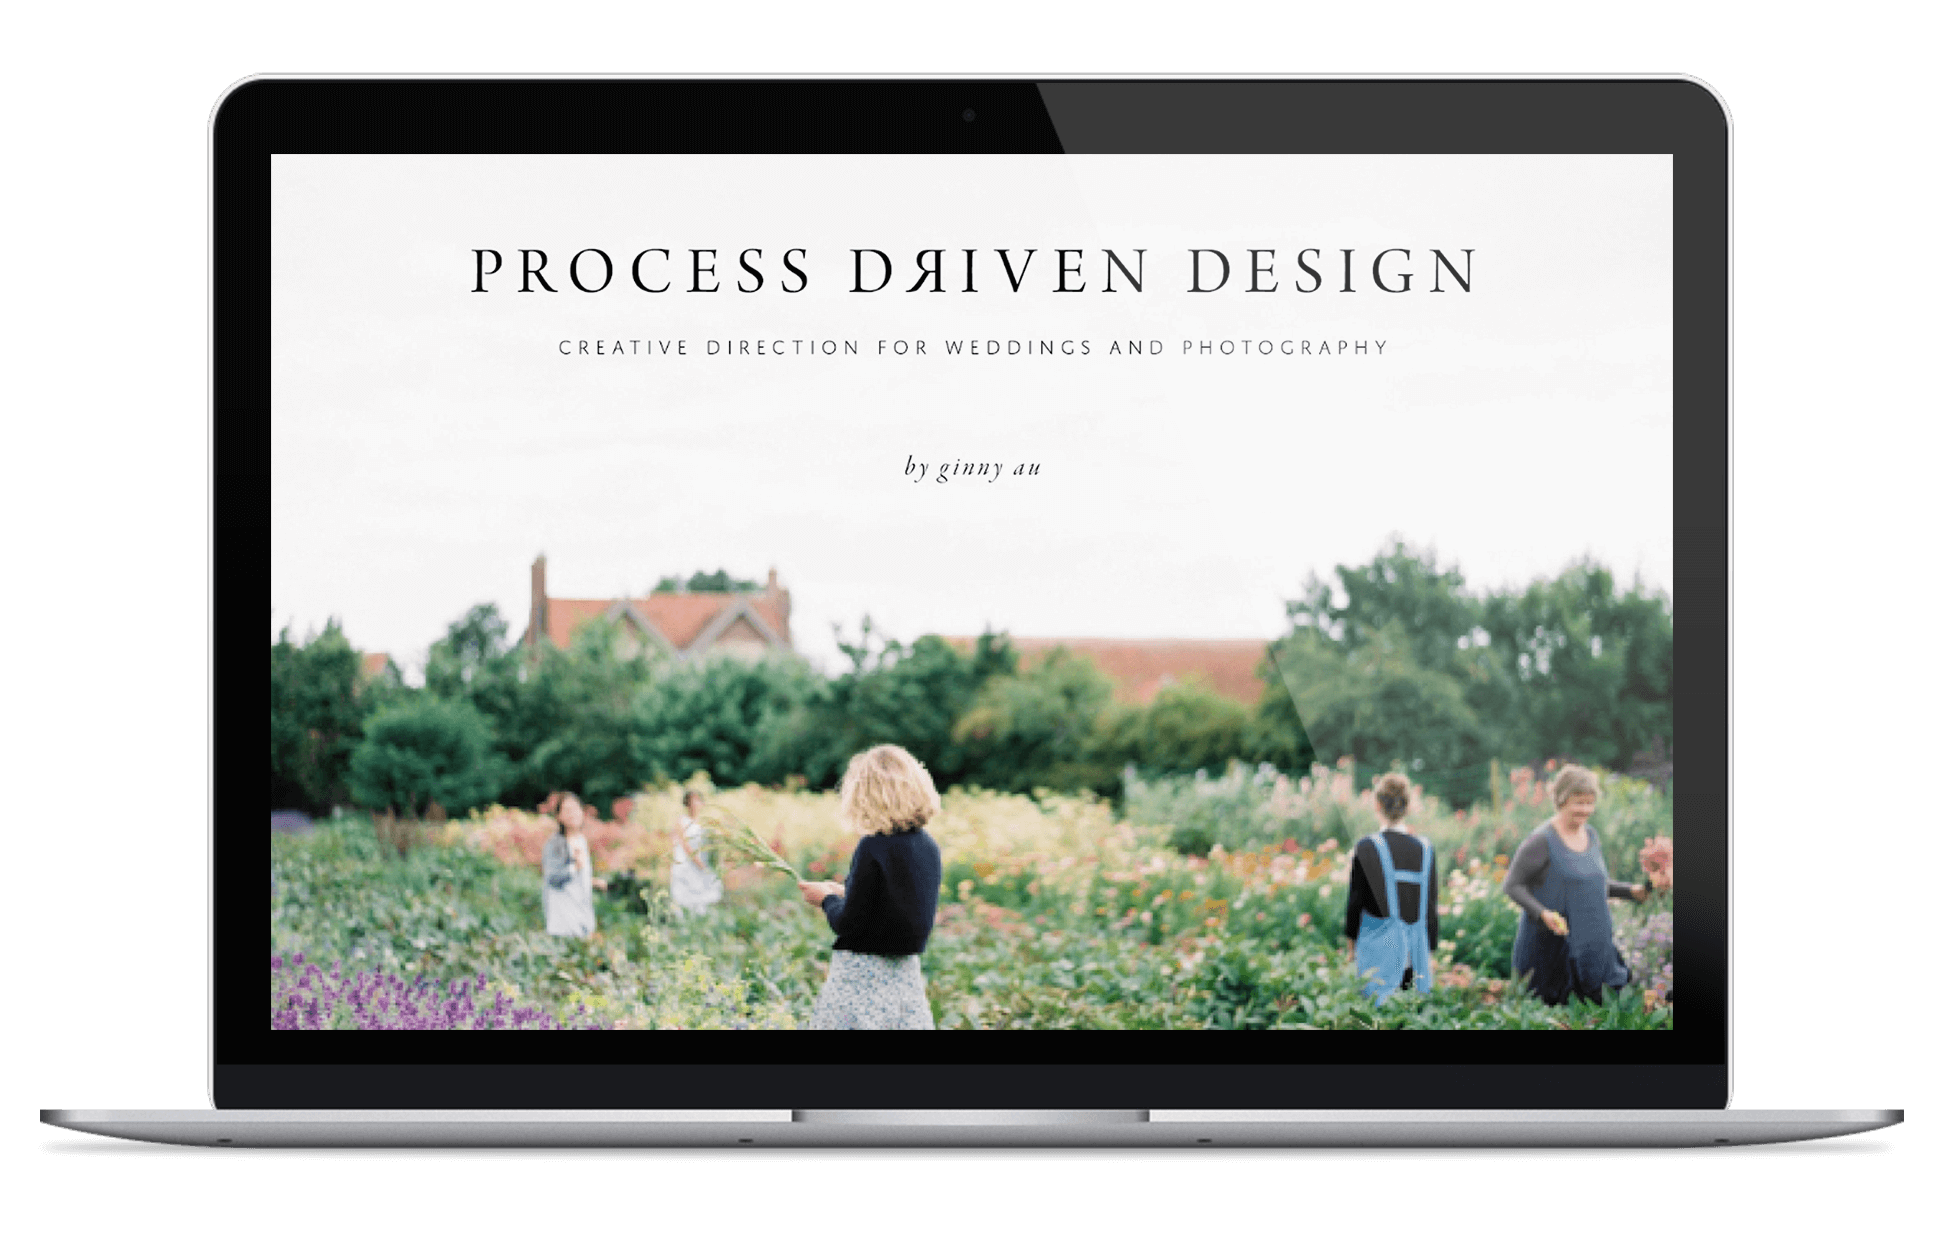 Design process and execution - Online course